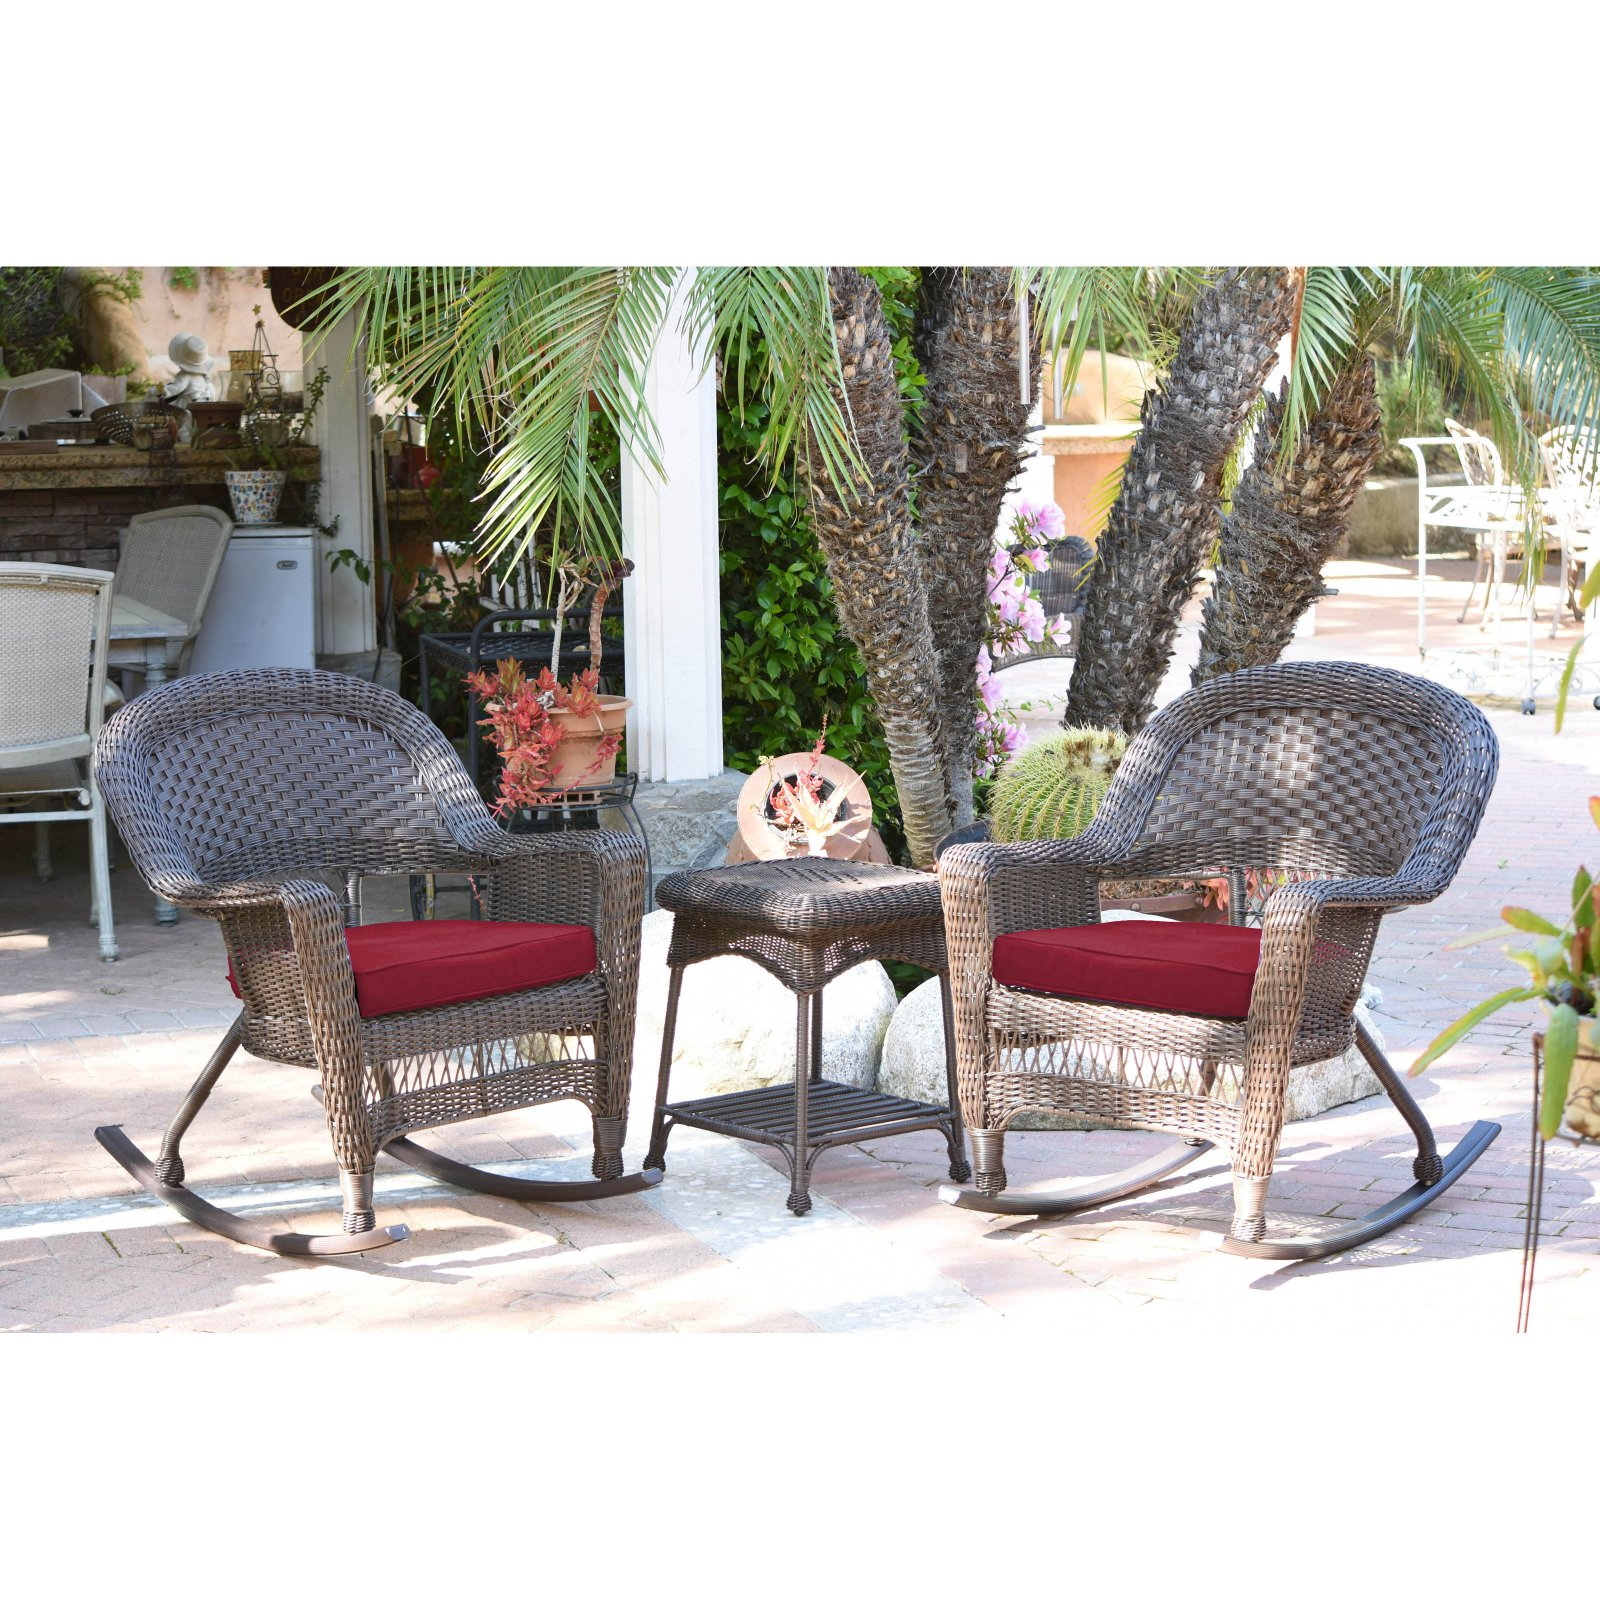 outdoor jeco 3 pc wicker rocker chair set with side table red in rh pinterest com